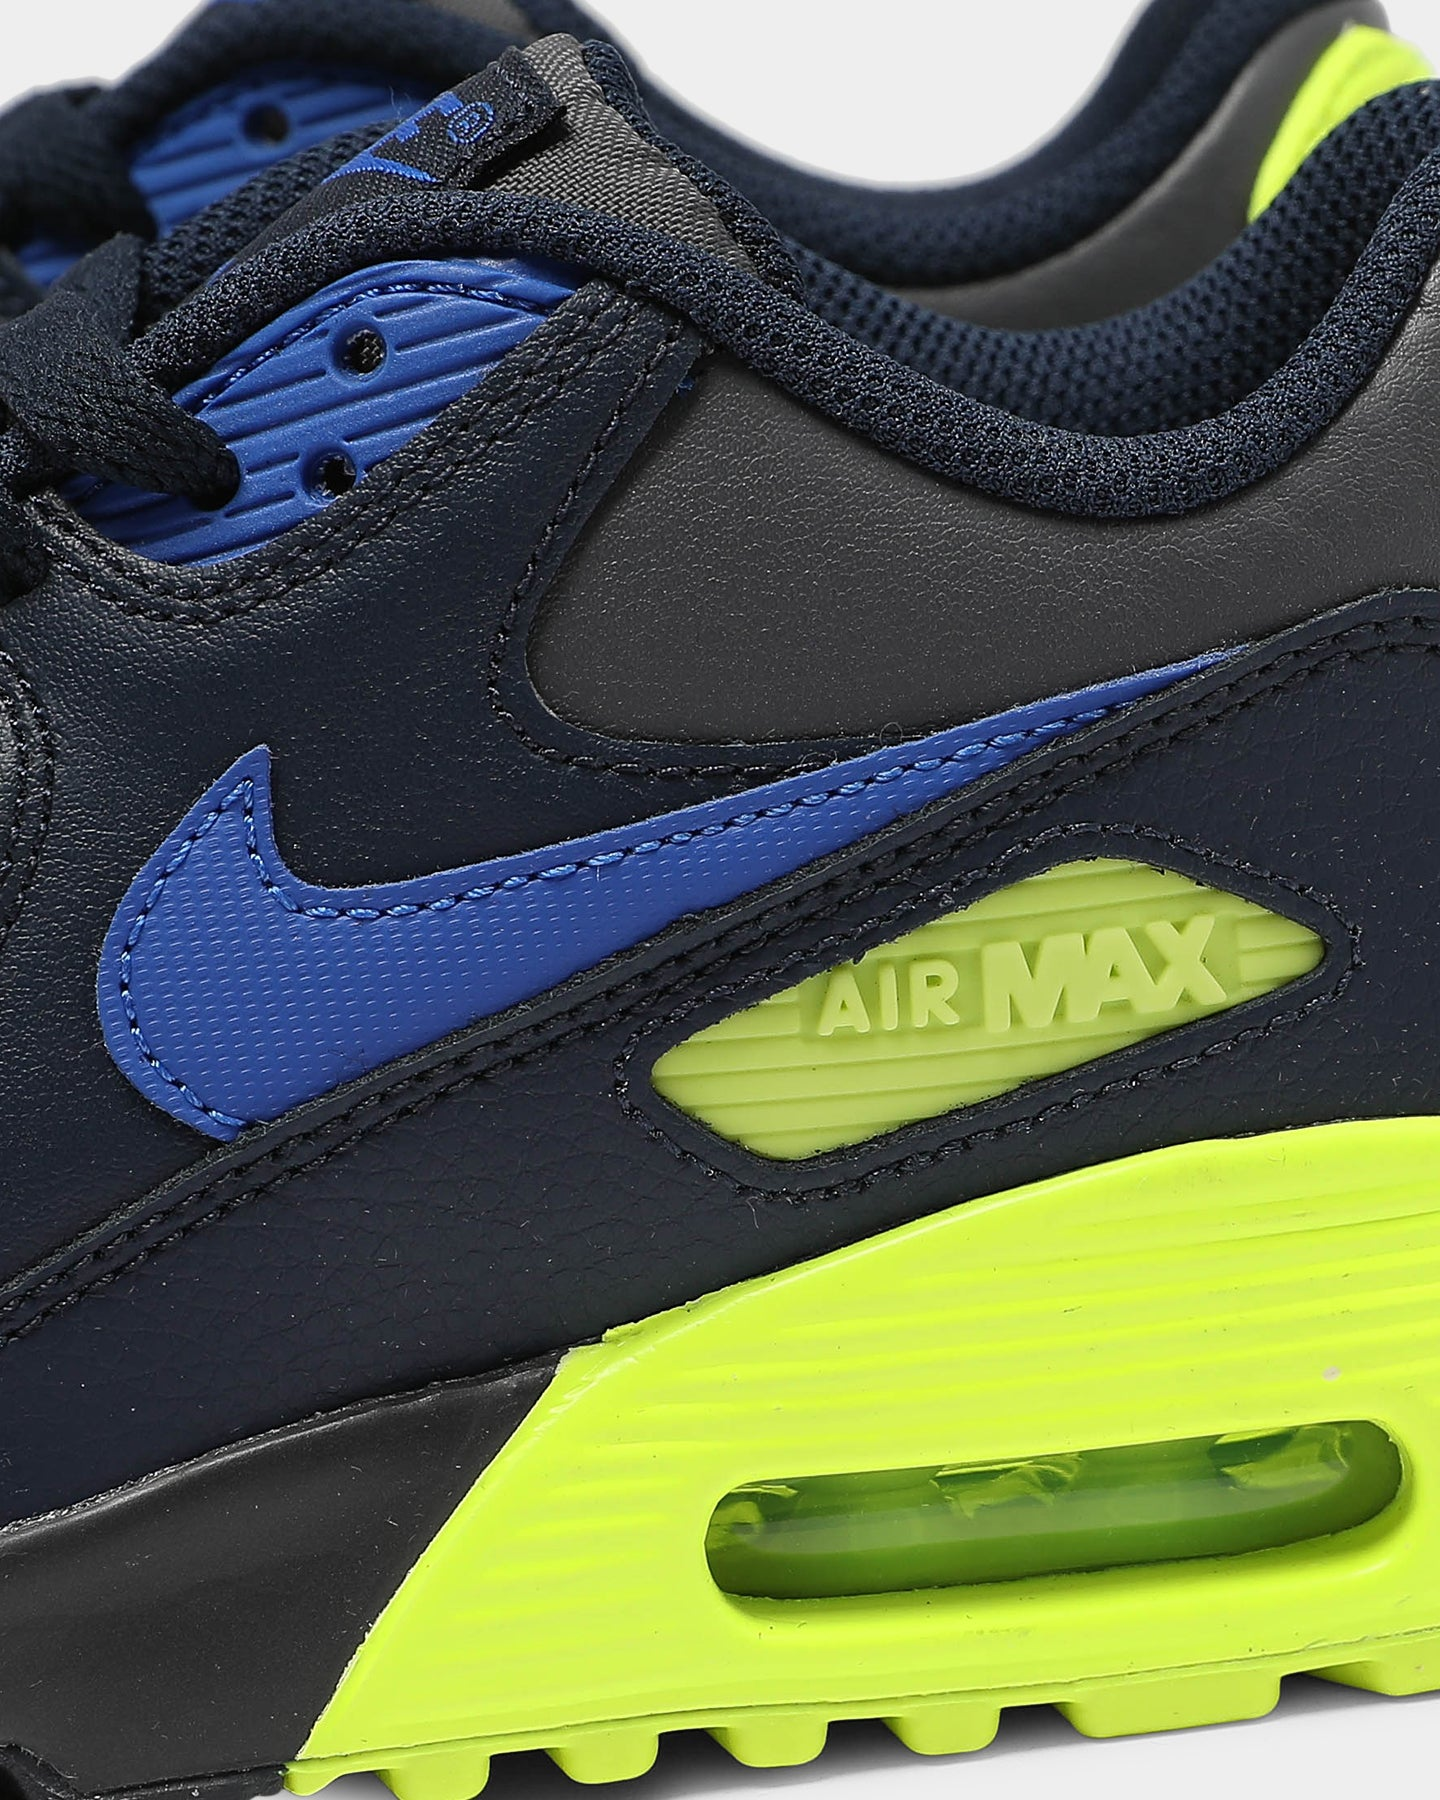 Nike Air Max 90 FB GS BlackVolt | SBD